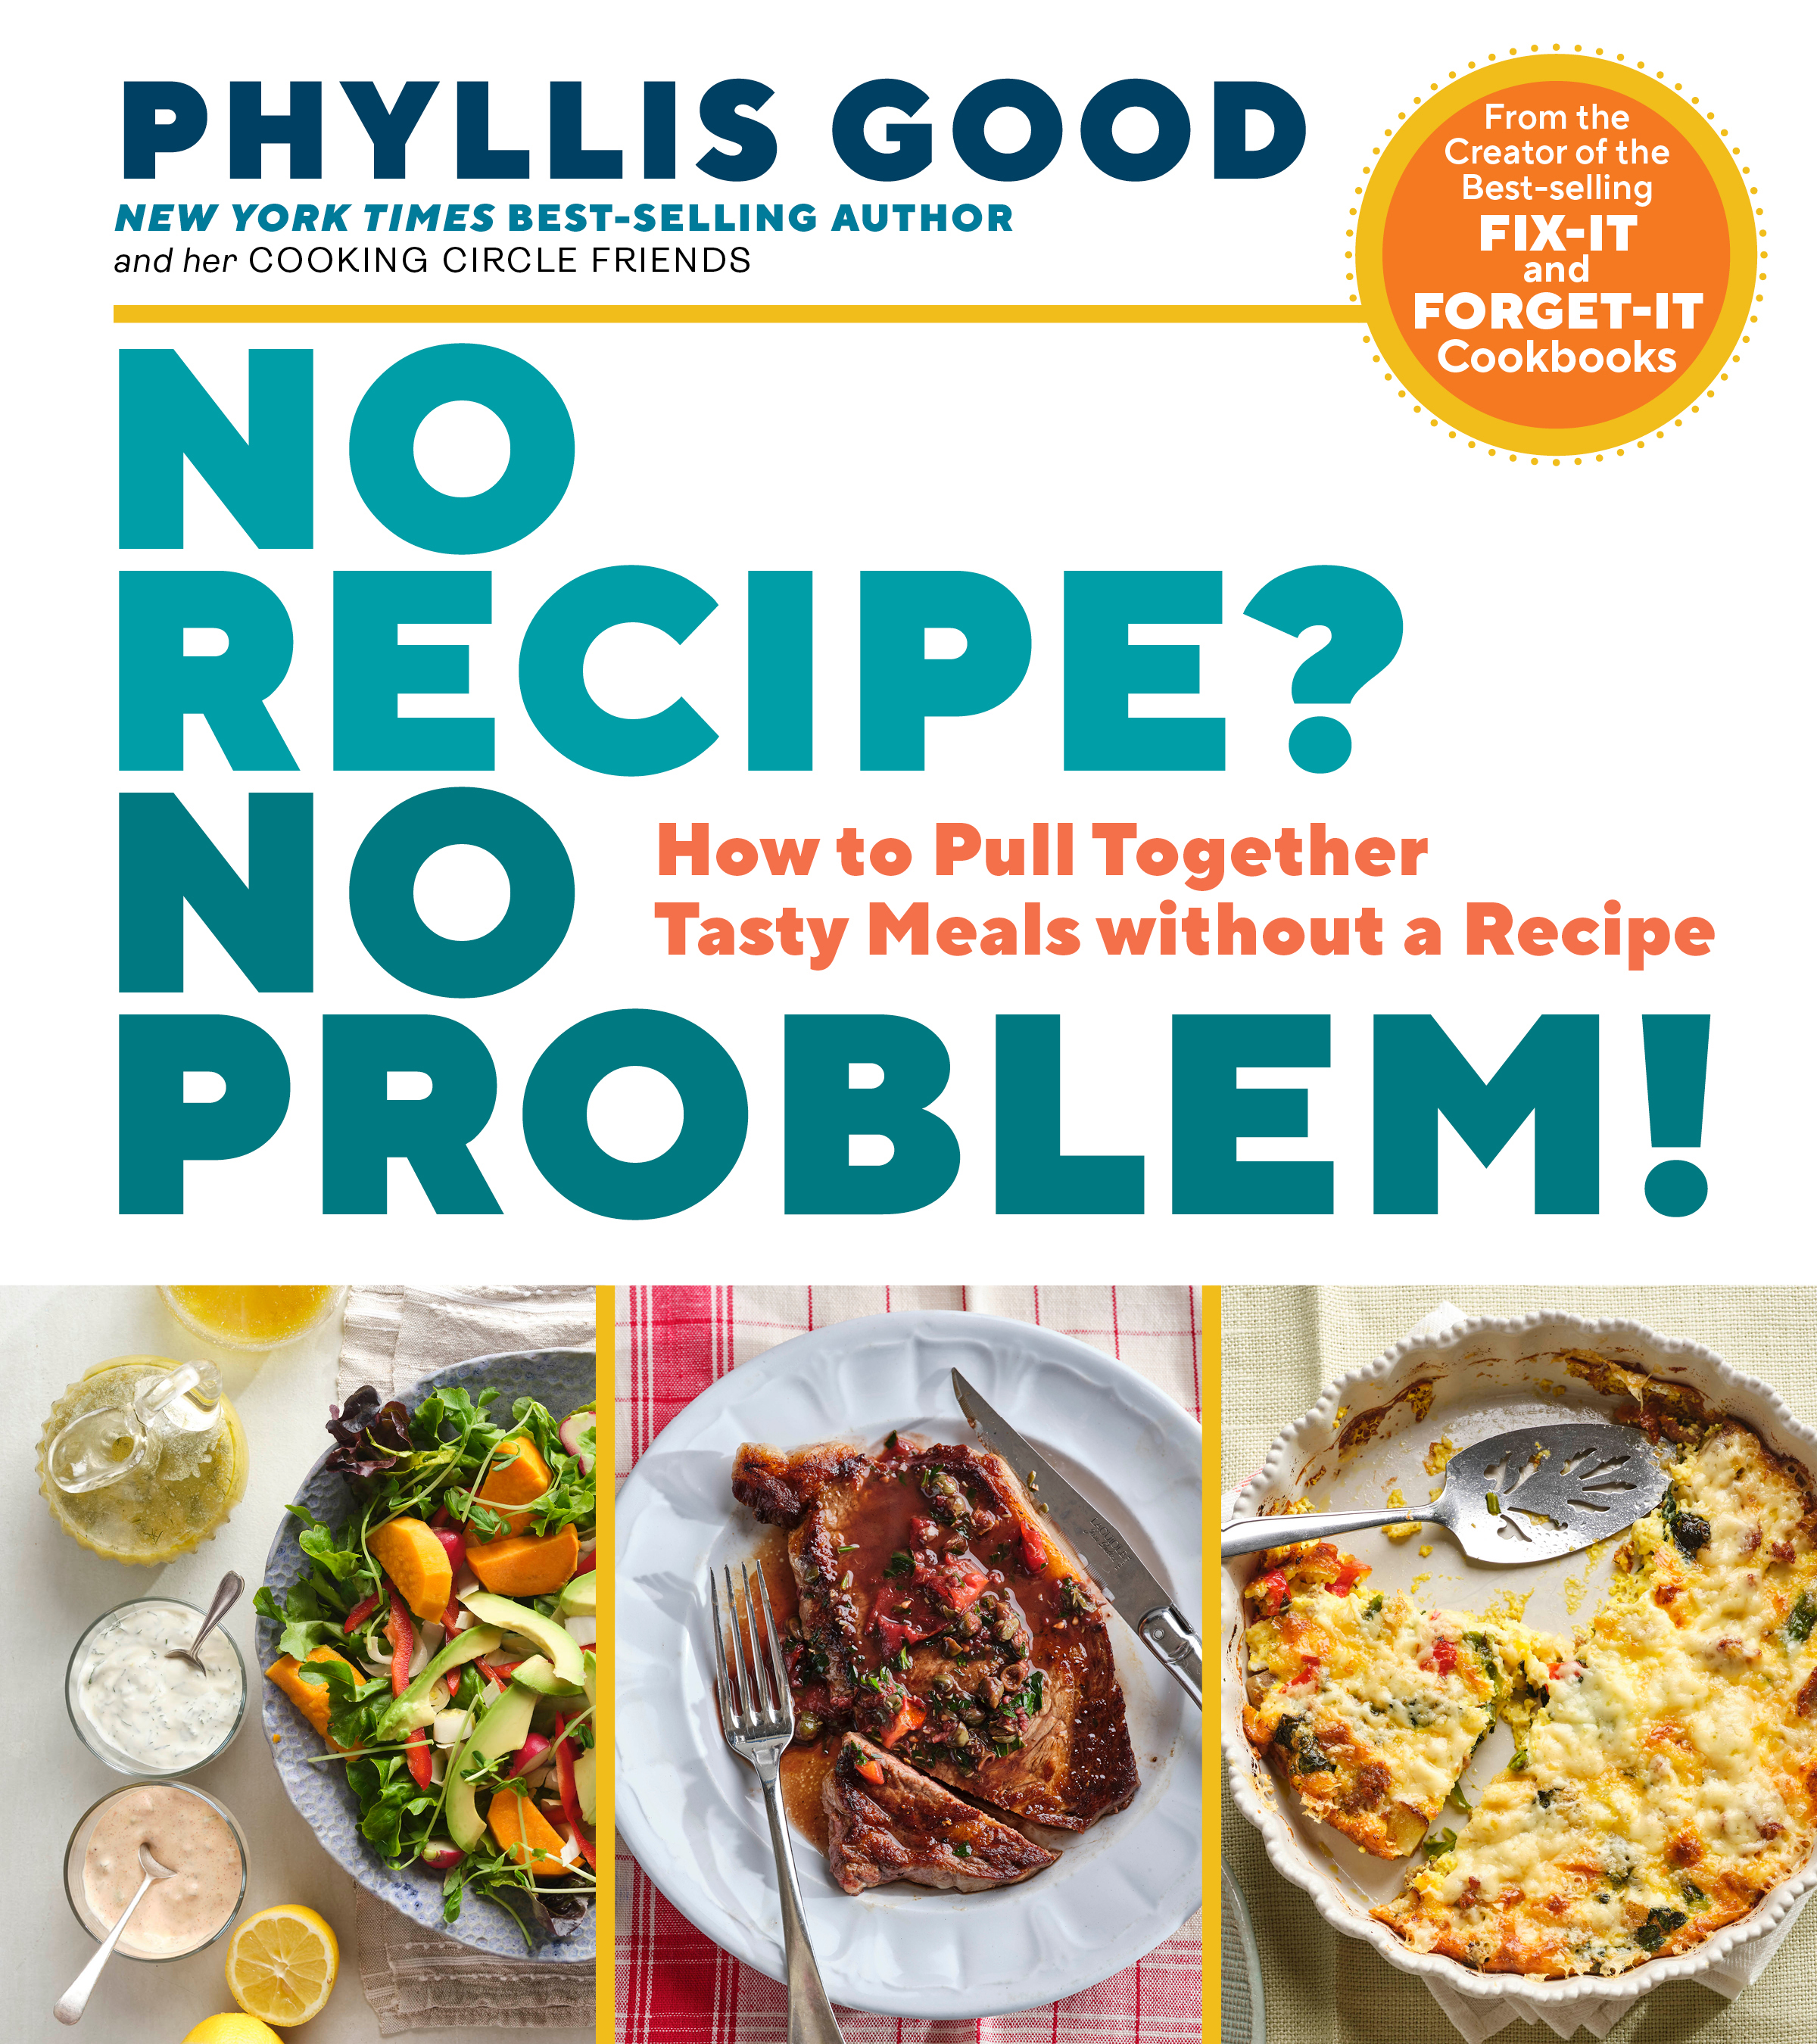 No Recipe? No Problem! How to Pull Together Tasty Meals without a Recipe - Phyllis Good